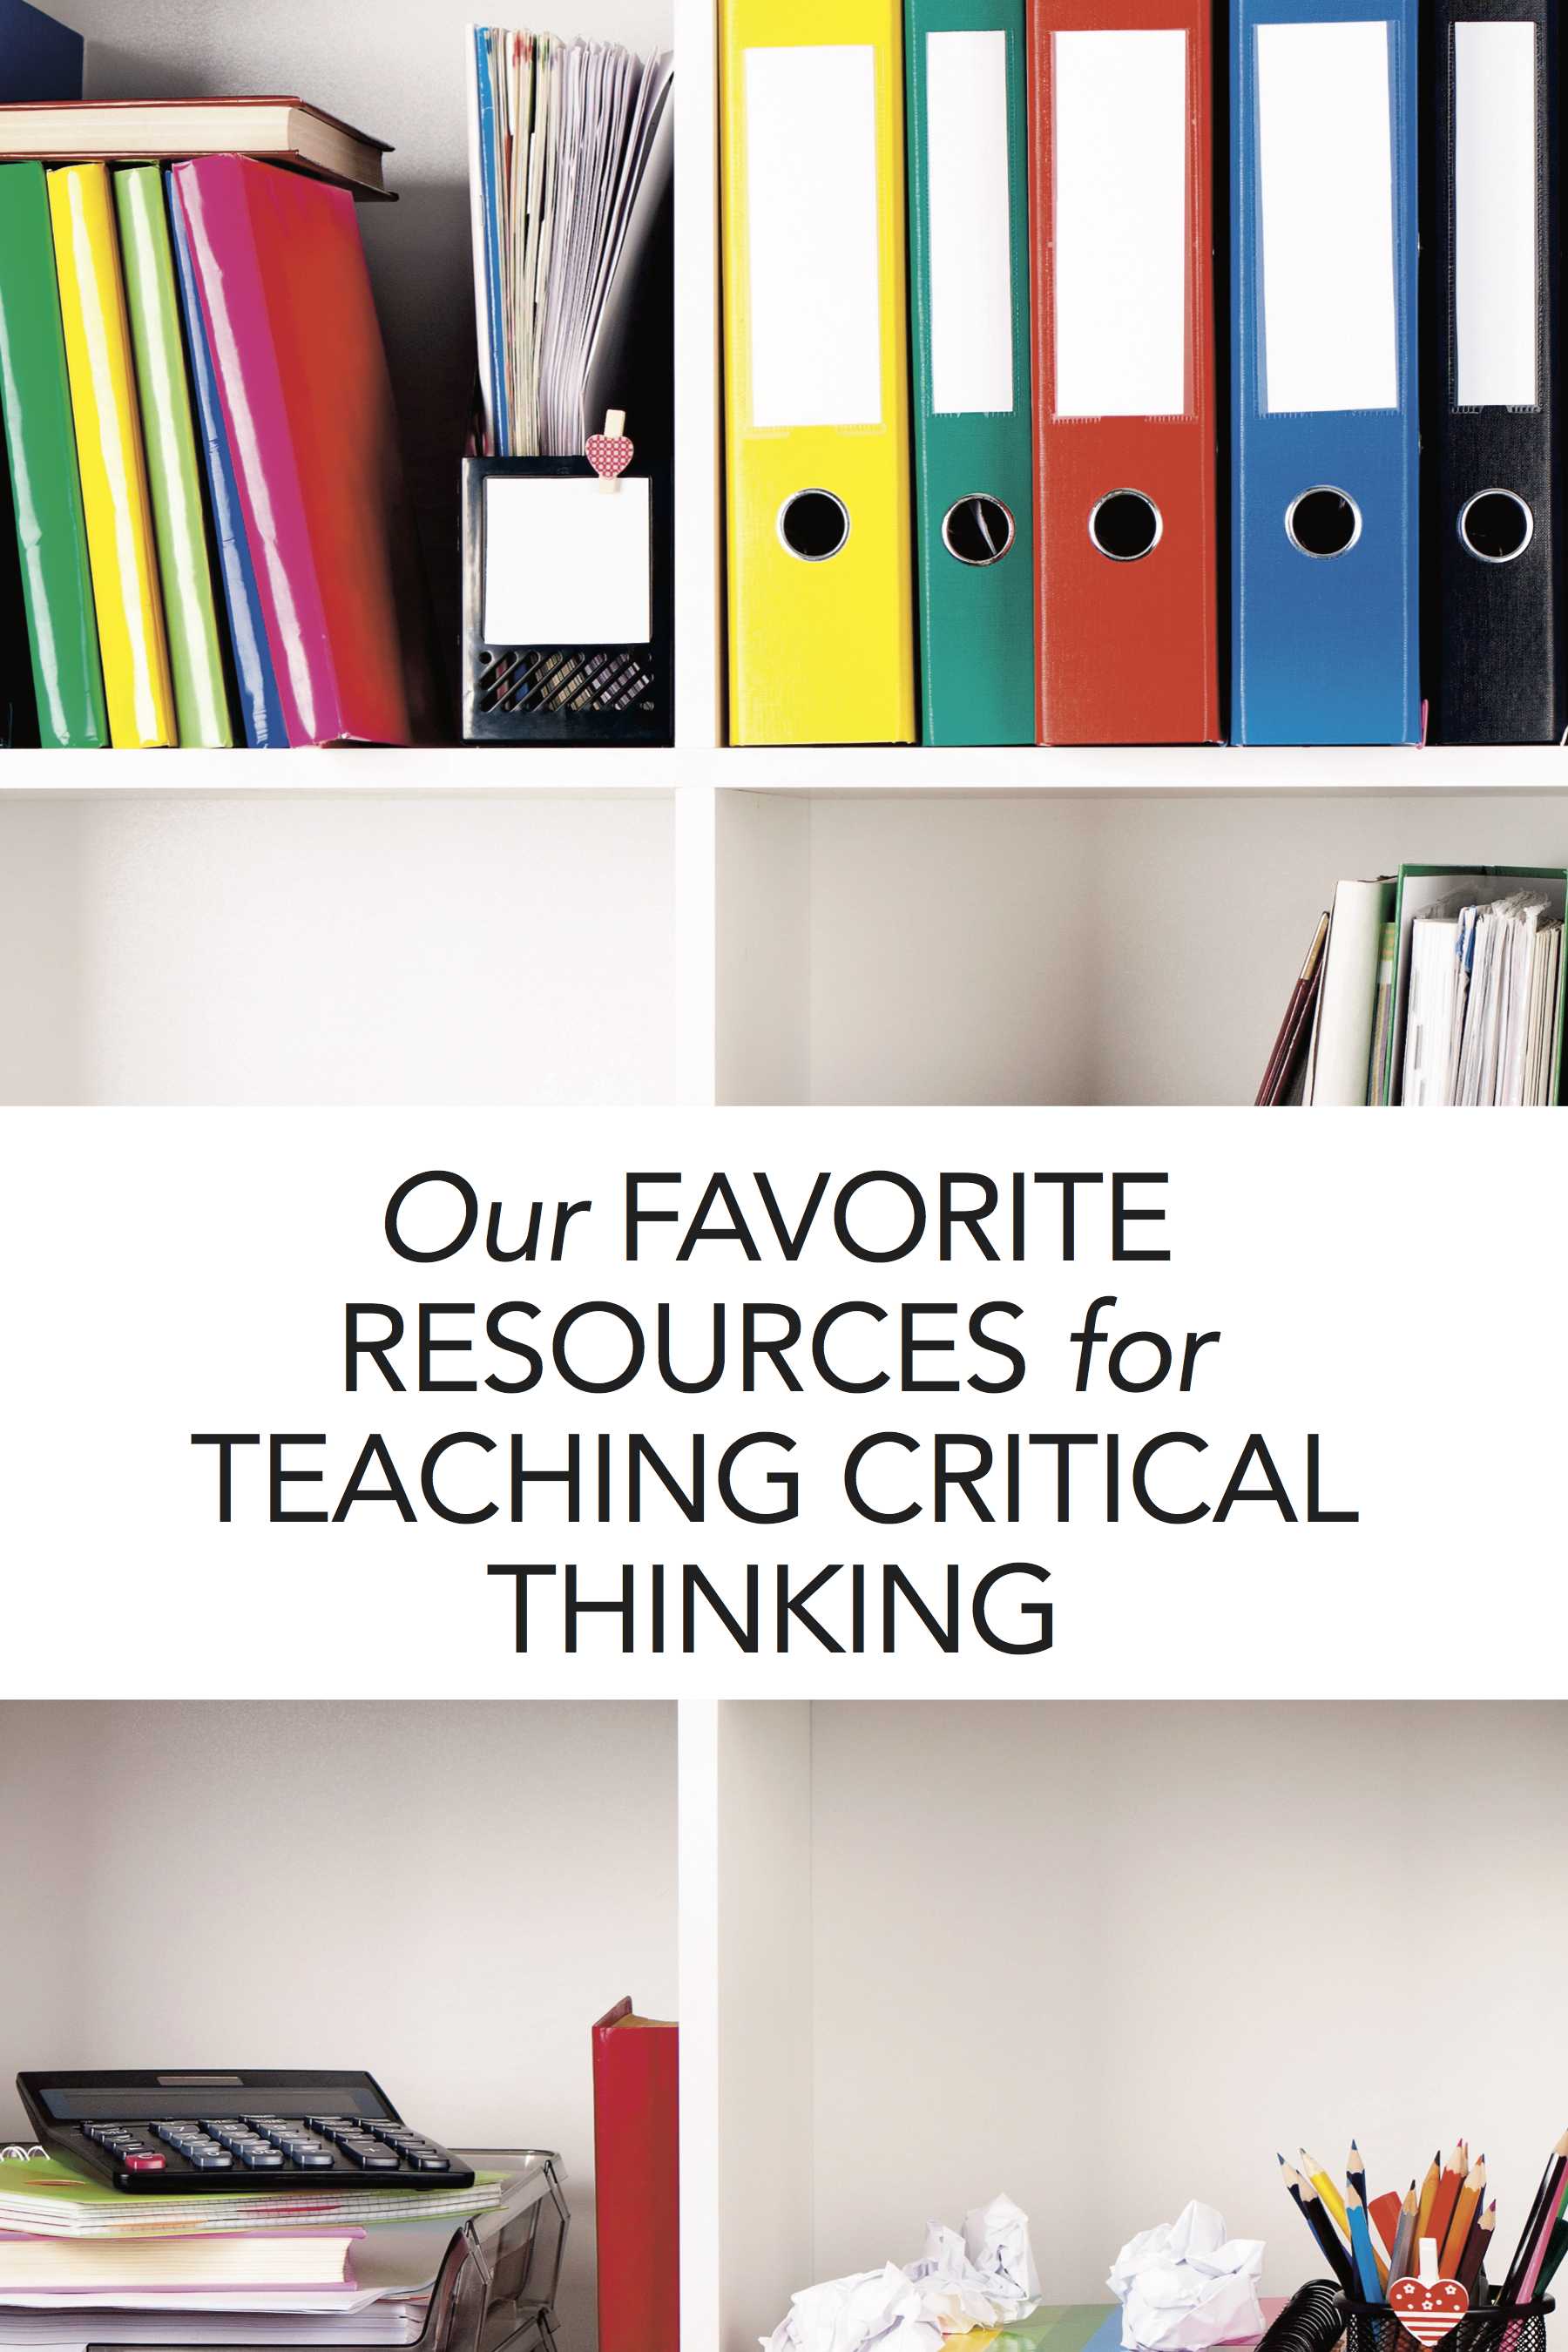 From board games to books and curriculum, these are some of our favorite critical thinking resources for homeschooling.